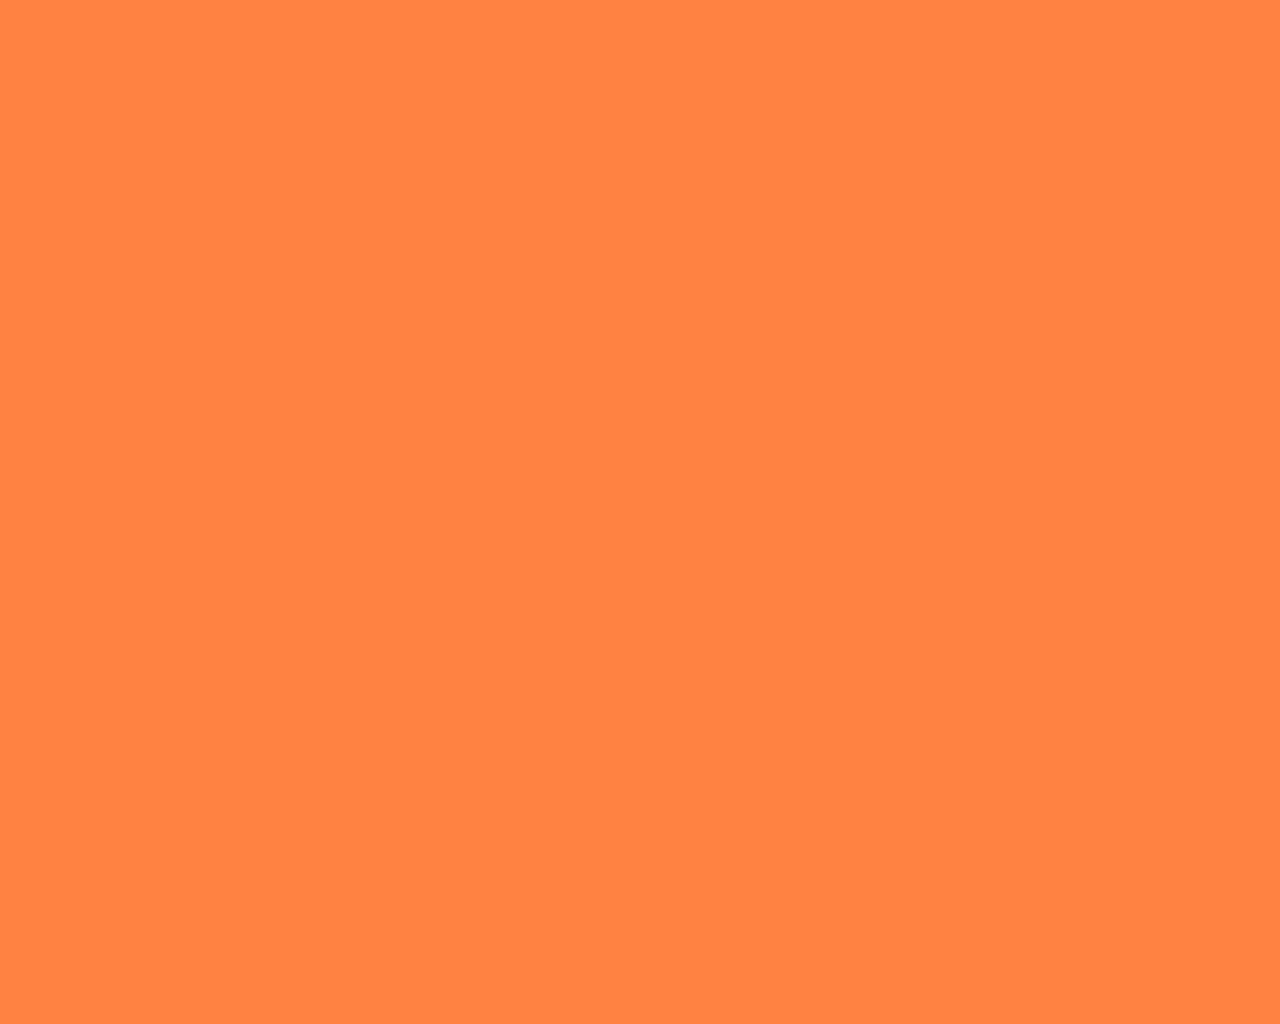 1280x1024 Mango Tango Solid Color Background